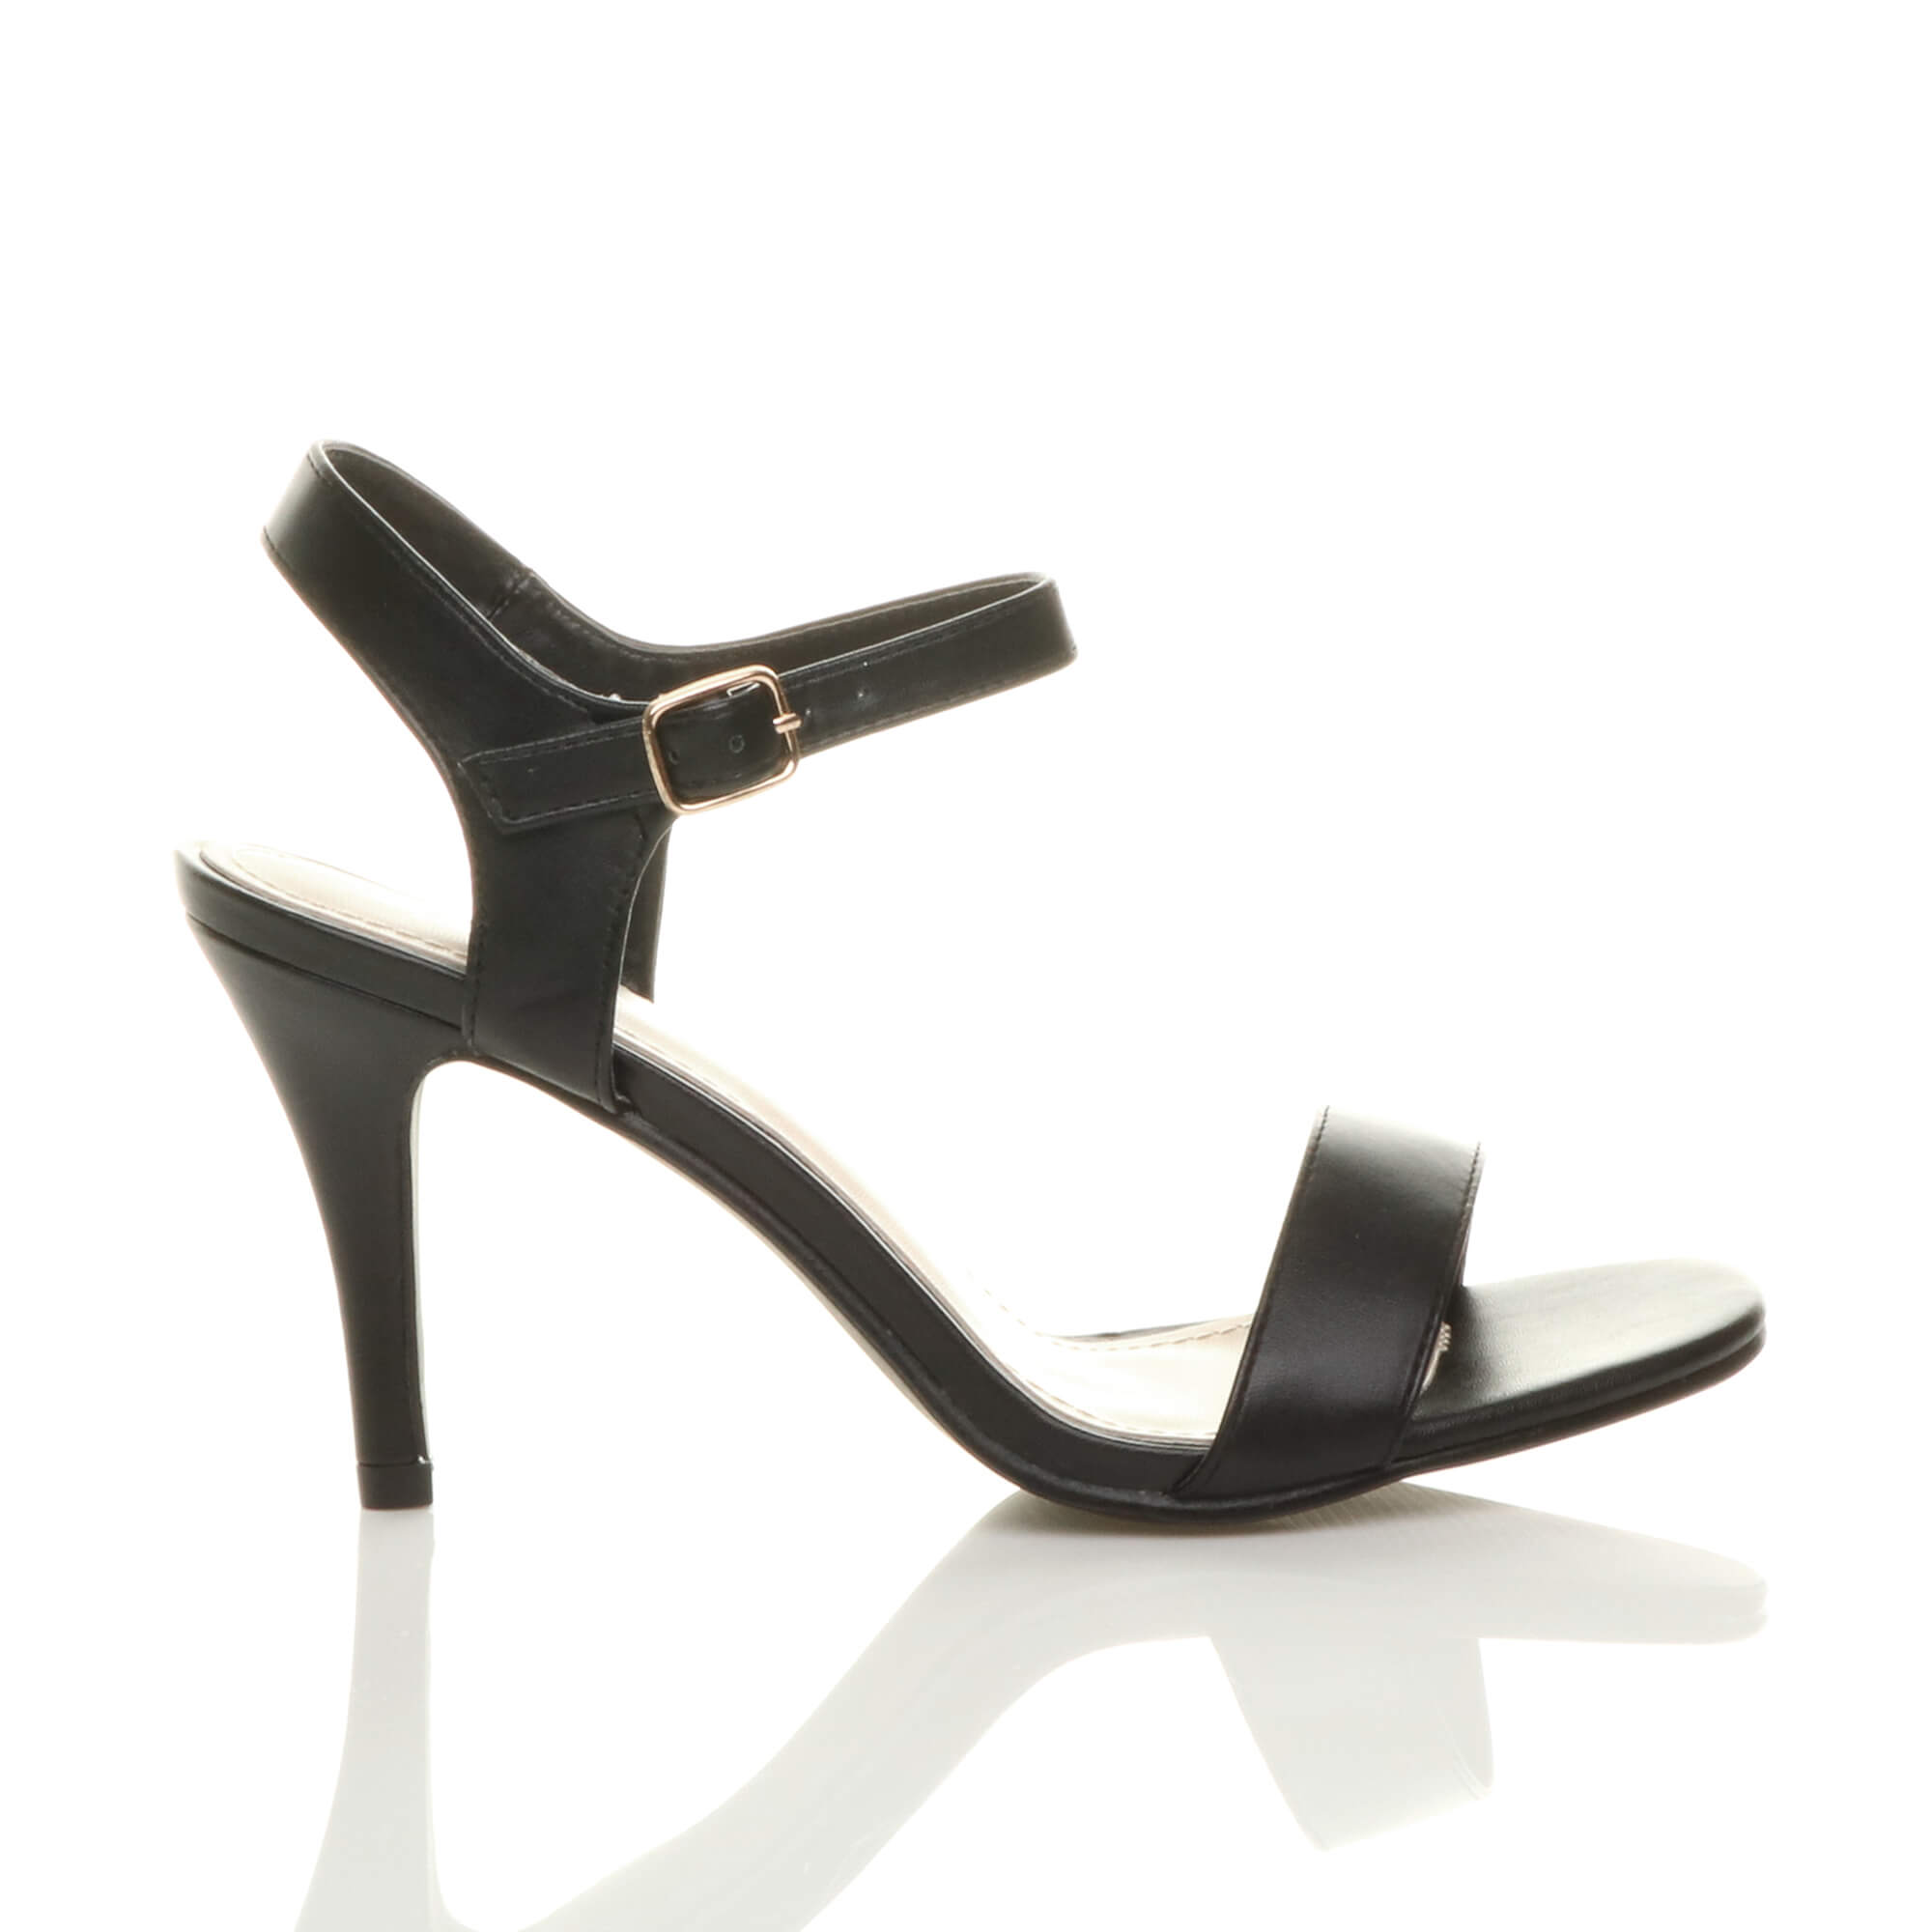 WOMENS-LADIES-HIGH-HEEL-BUCKLE-STRAPPY-BASIC-BARELY-THERE-SANDALS-SHOES-SIZE thumbnail 3